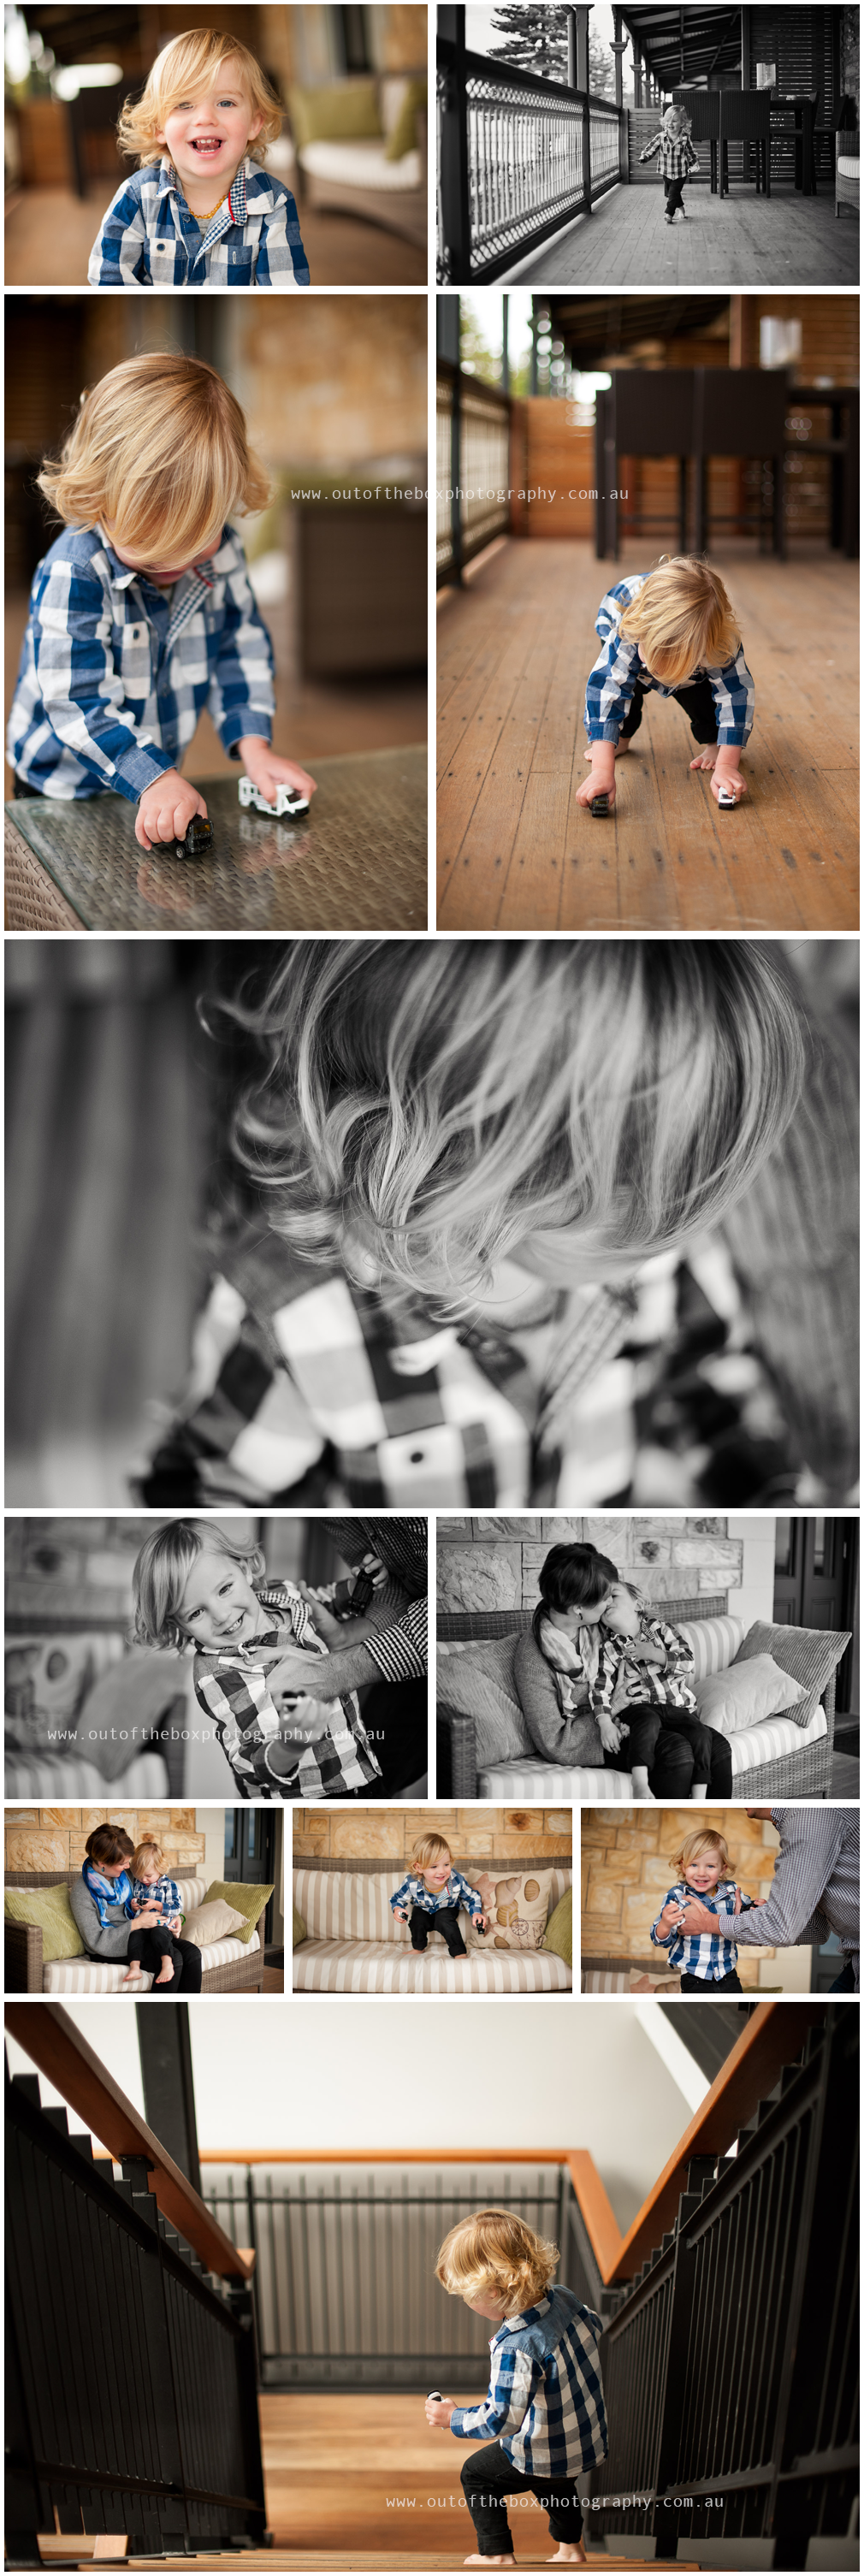 Adelaide family photography